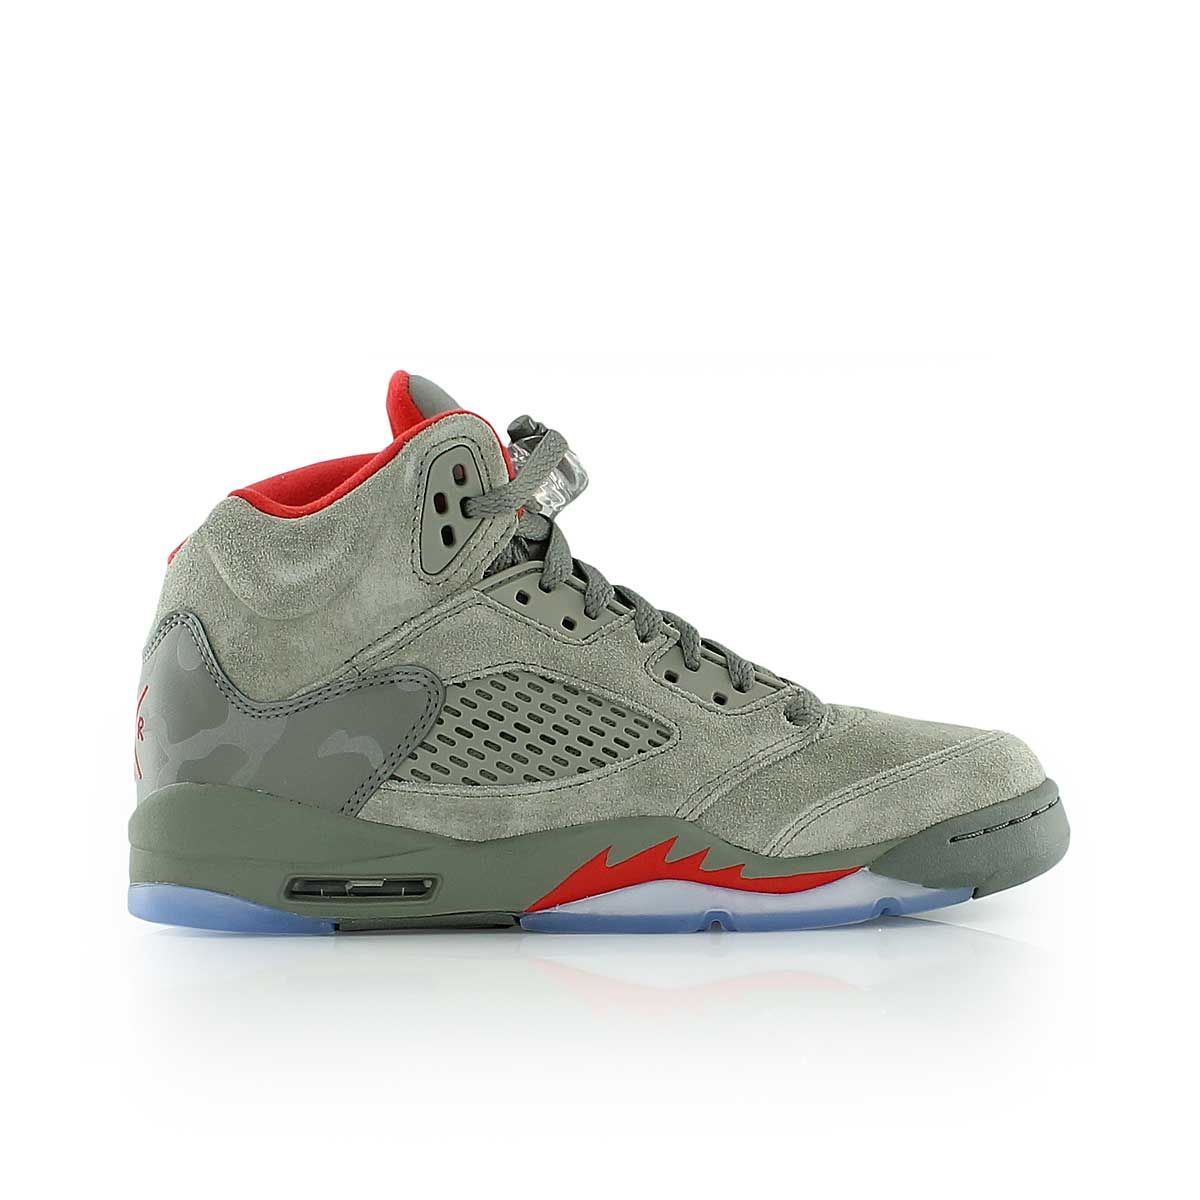 official photos ba189 72b64 jordan AIR JORDAN 5 RETRO BG DARK STUCCO UNIVERSITY RED-RIVER ROCK